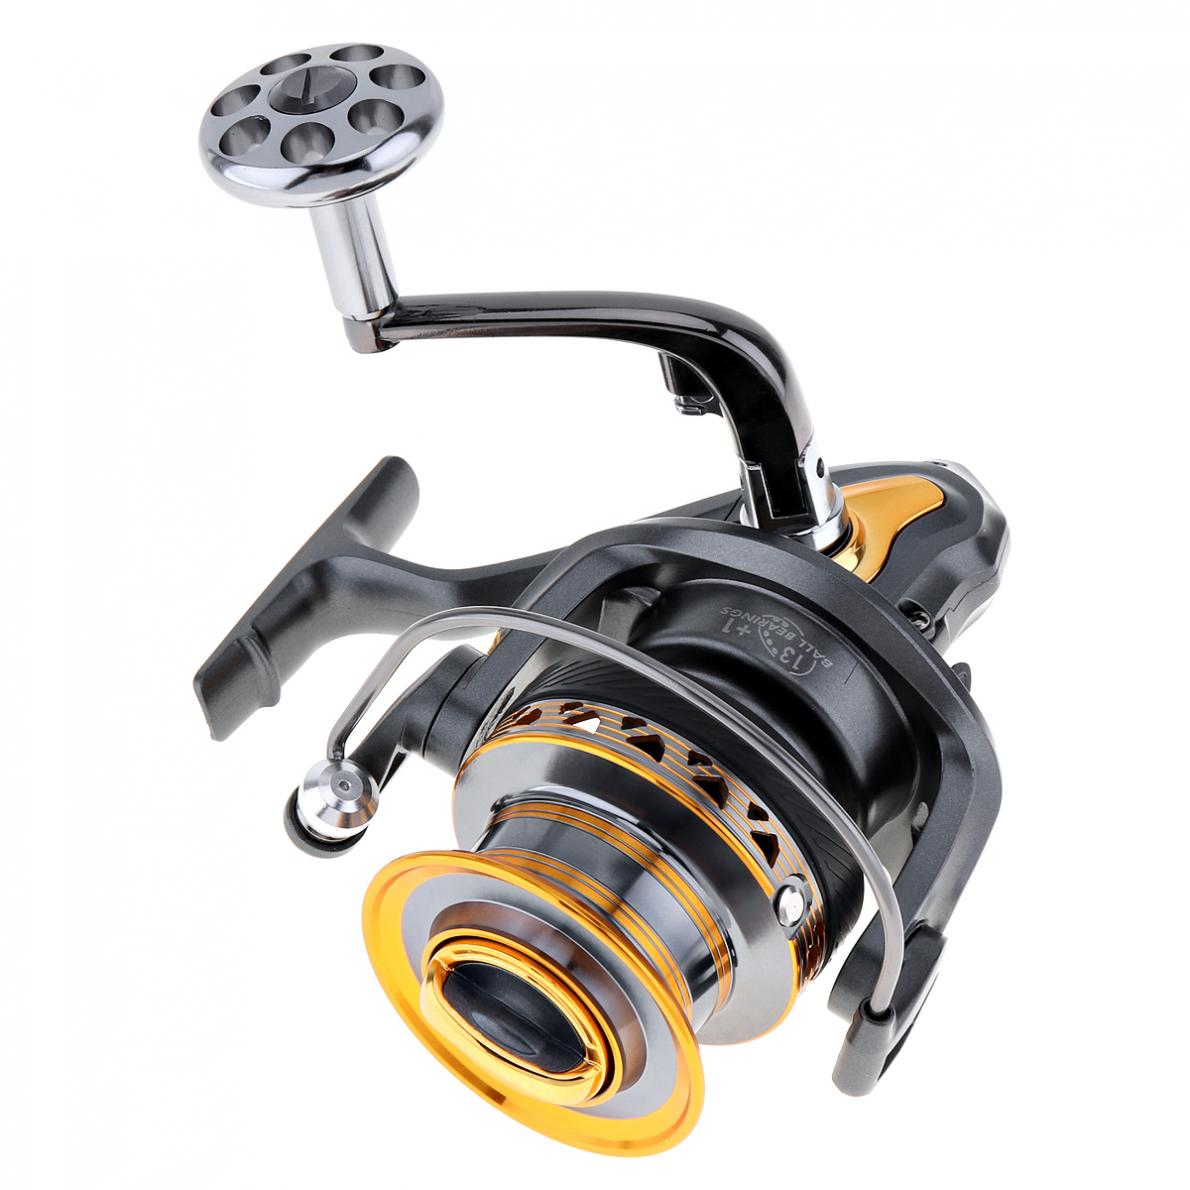 6000/7000 Series 4.7:1 13+1 Ball Bearings Aluminum Spool Spinning Fishing Reel Long Distance Surfcasting Reel ball bearing professional long distance casting spinning fishing reel surfcasting reel left right spinning reel